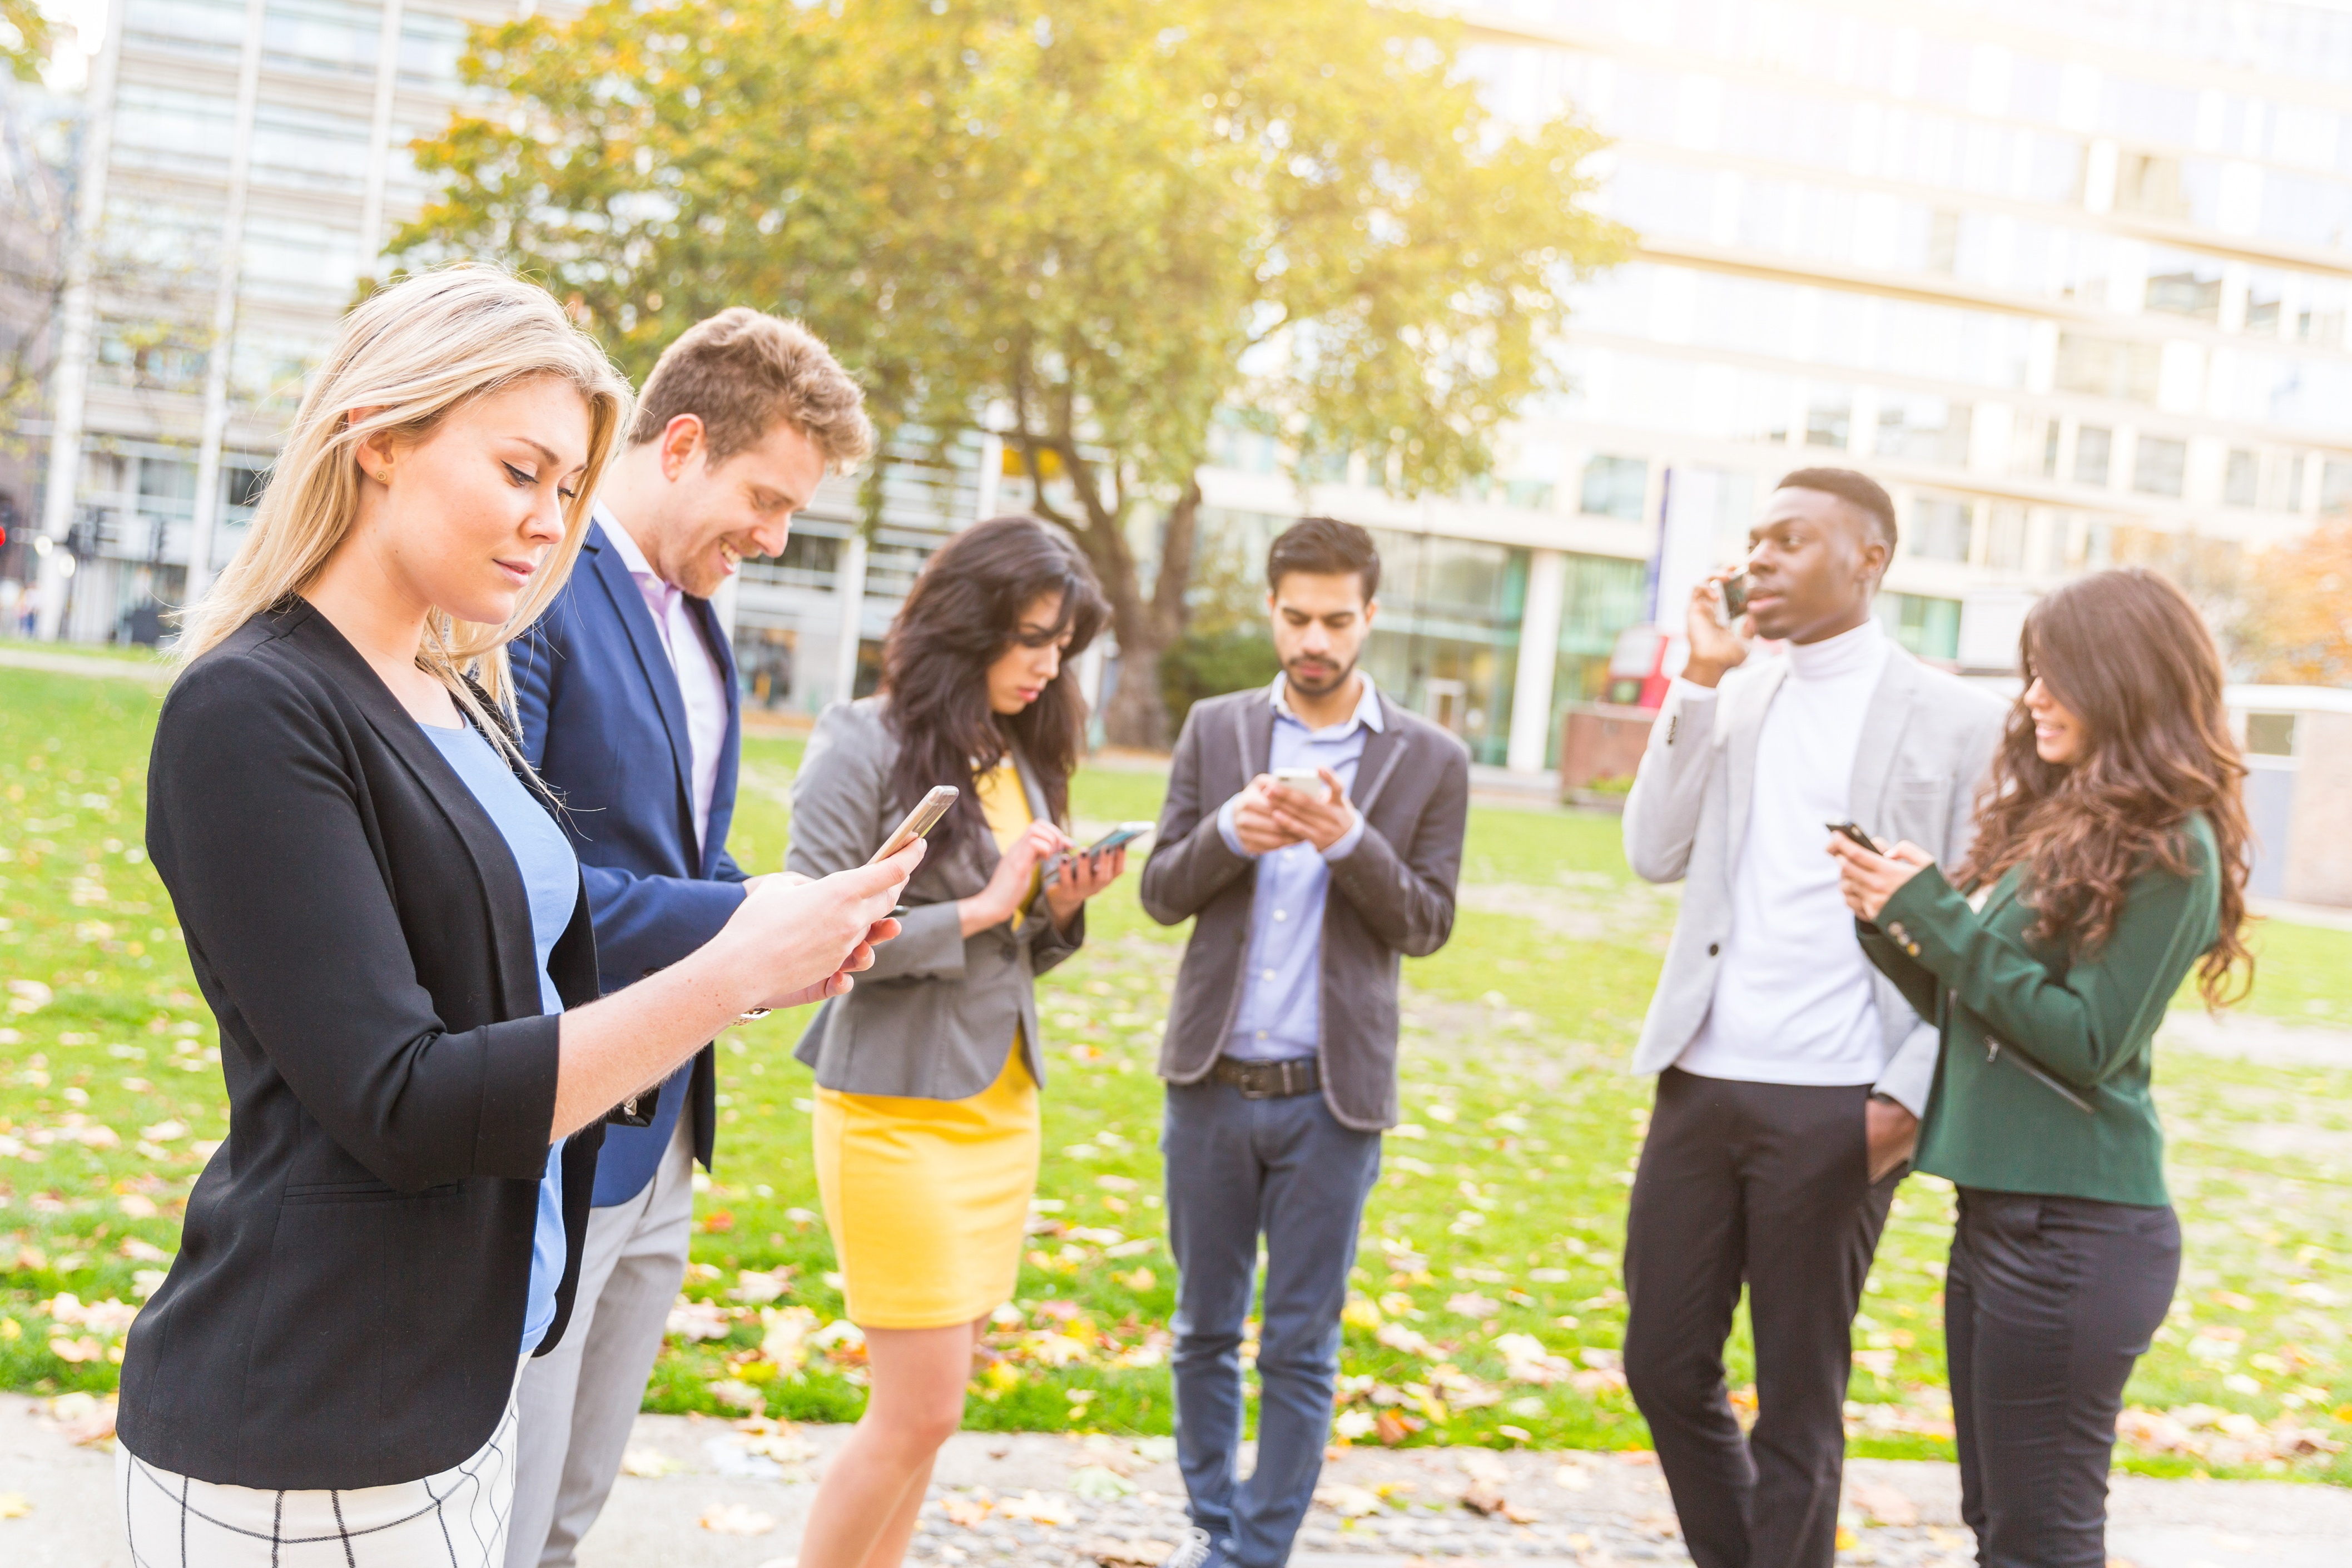 Group of people outdoors on cell phones.